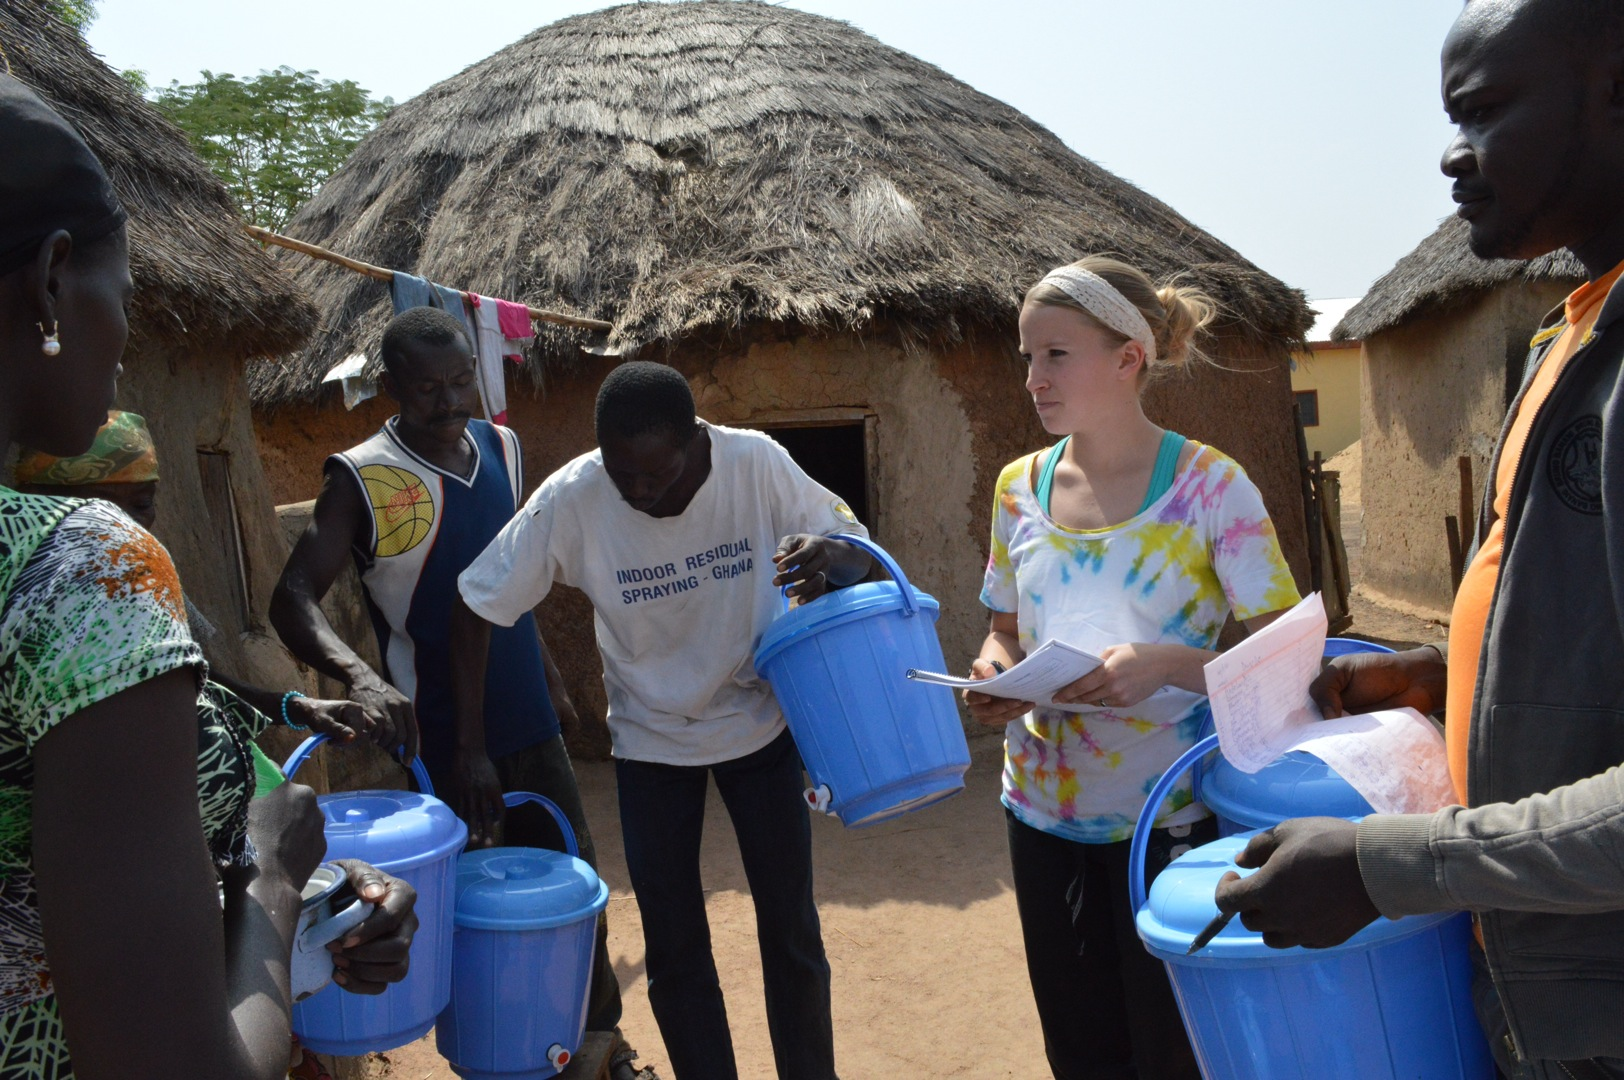 Meaghan distributing safe storage containers with the help of some village members